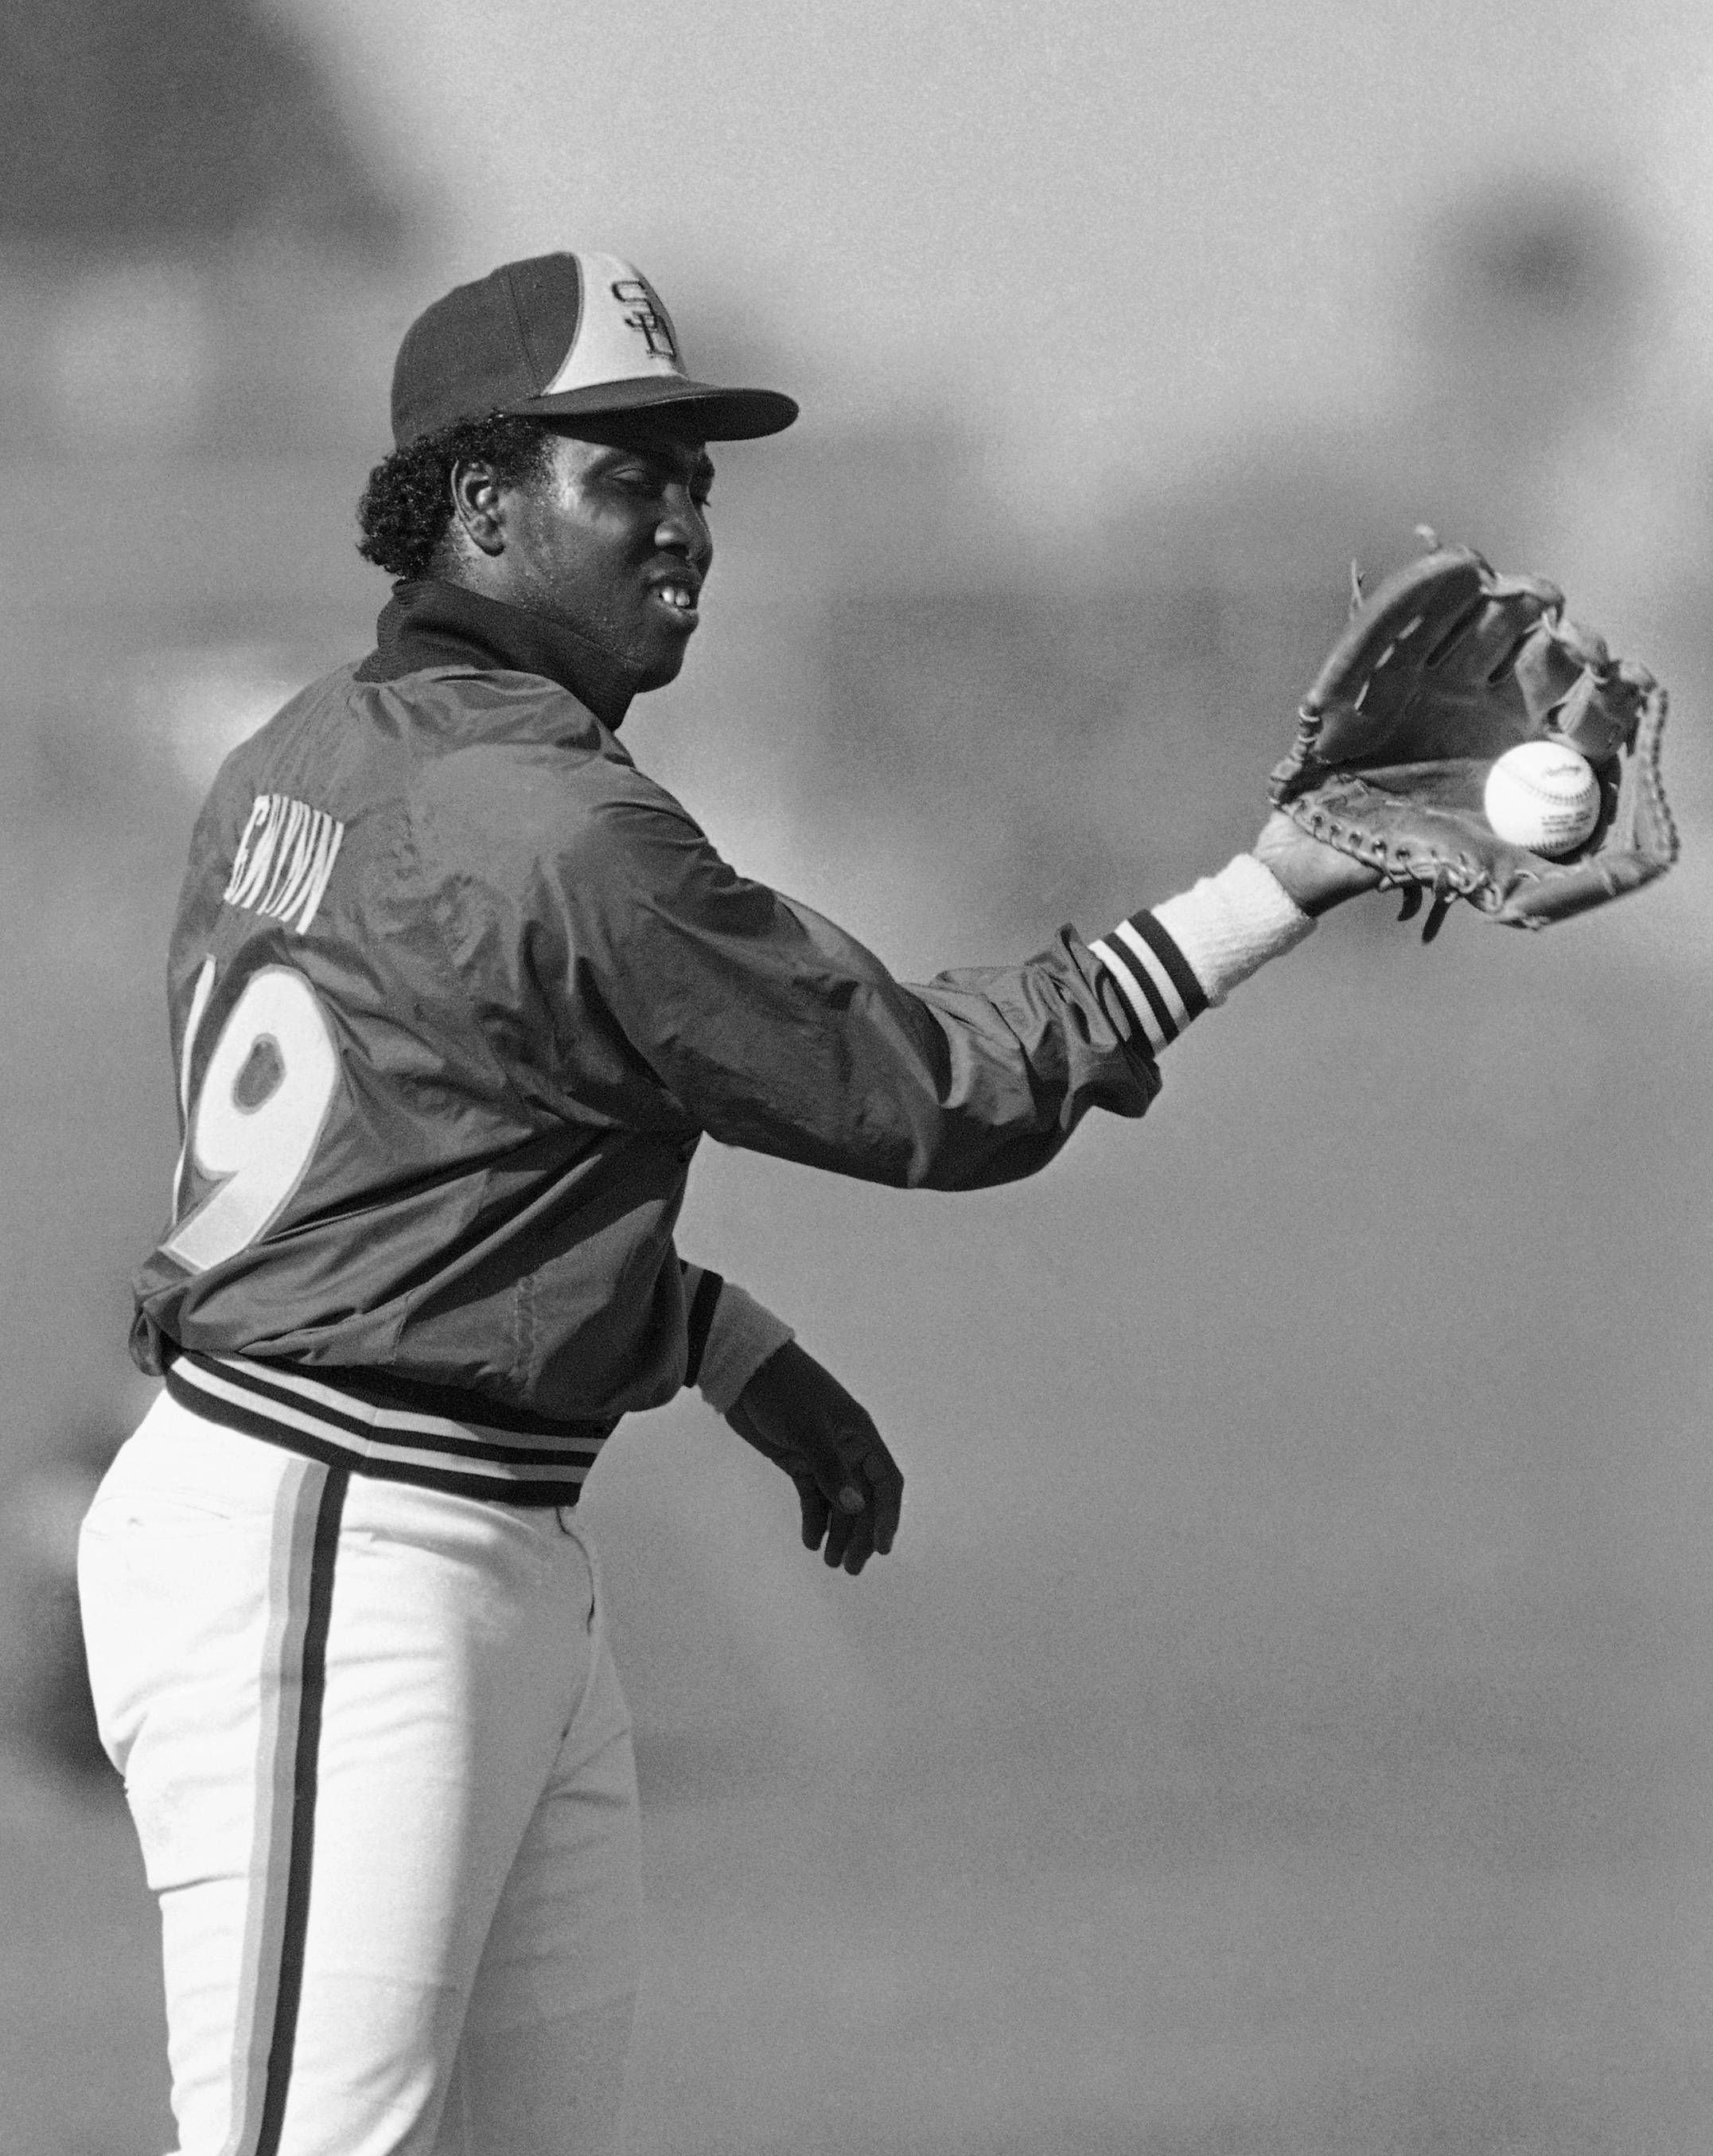 In this March 6, 1985 file photo, San Diego Padres' Tony Gwynn does a twist to make a back hand catch at the teams' spring training camp in Yuma, Ariz. Gwynn, the Hall of Famer with a sweet left-handed swing who spent his entire 20-year career with the Padres and was one of San Diego's most beloved athletes, died of cancer Monday, June 16, 2014. He was 54.